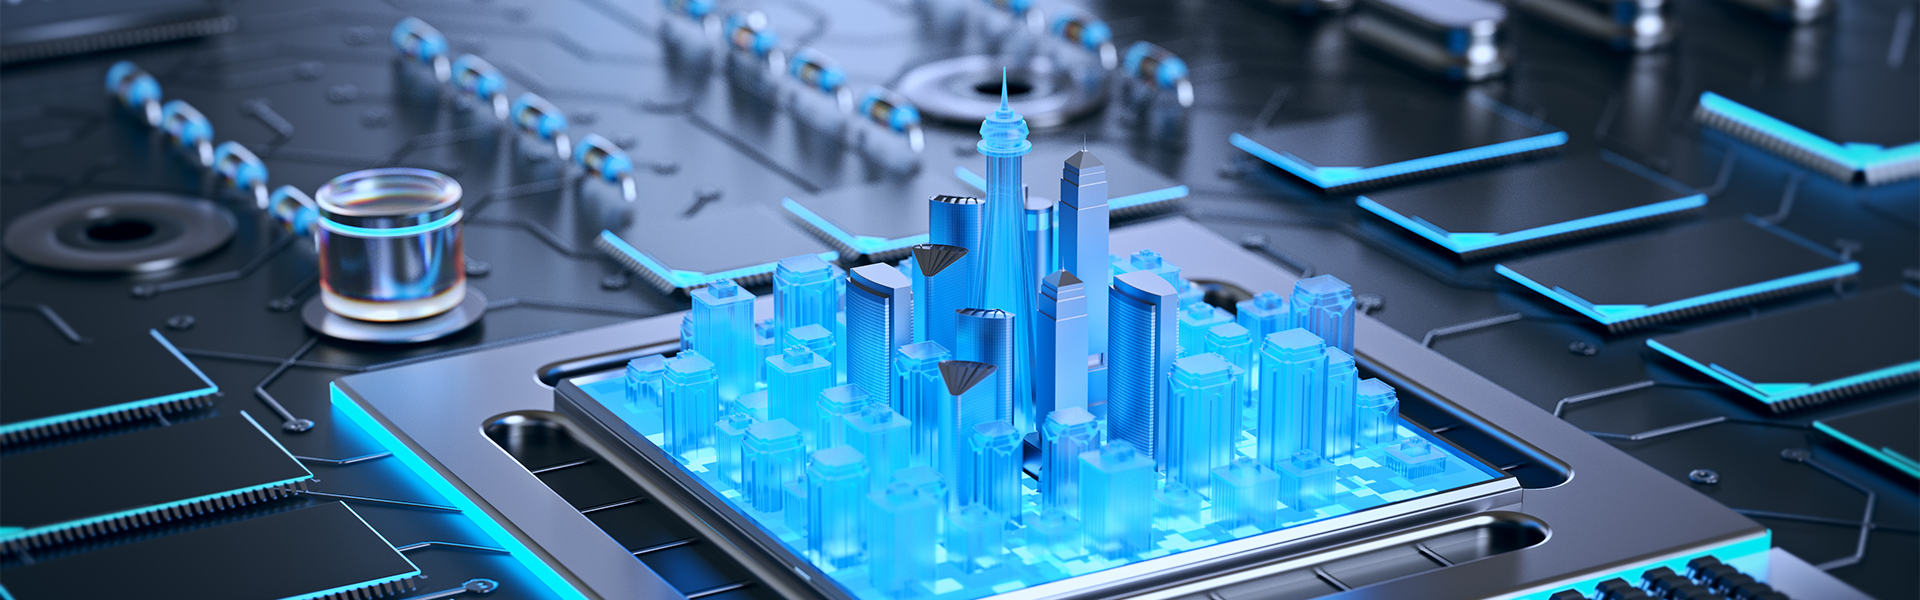 3d illustration of futuristic micro chip city. Computer science information technology background.